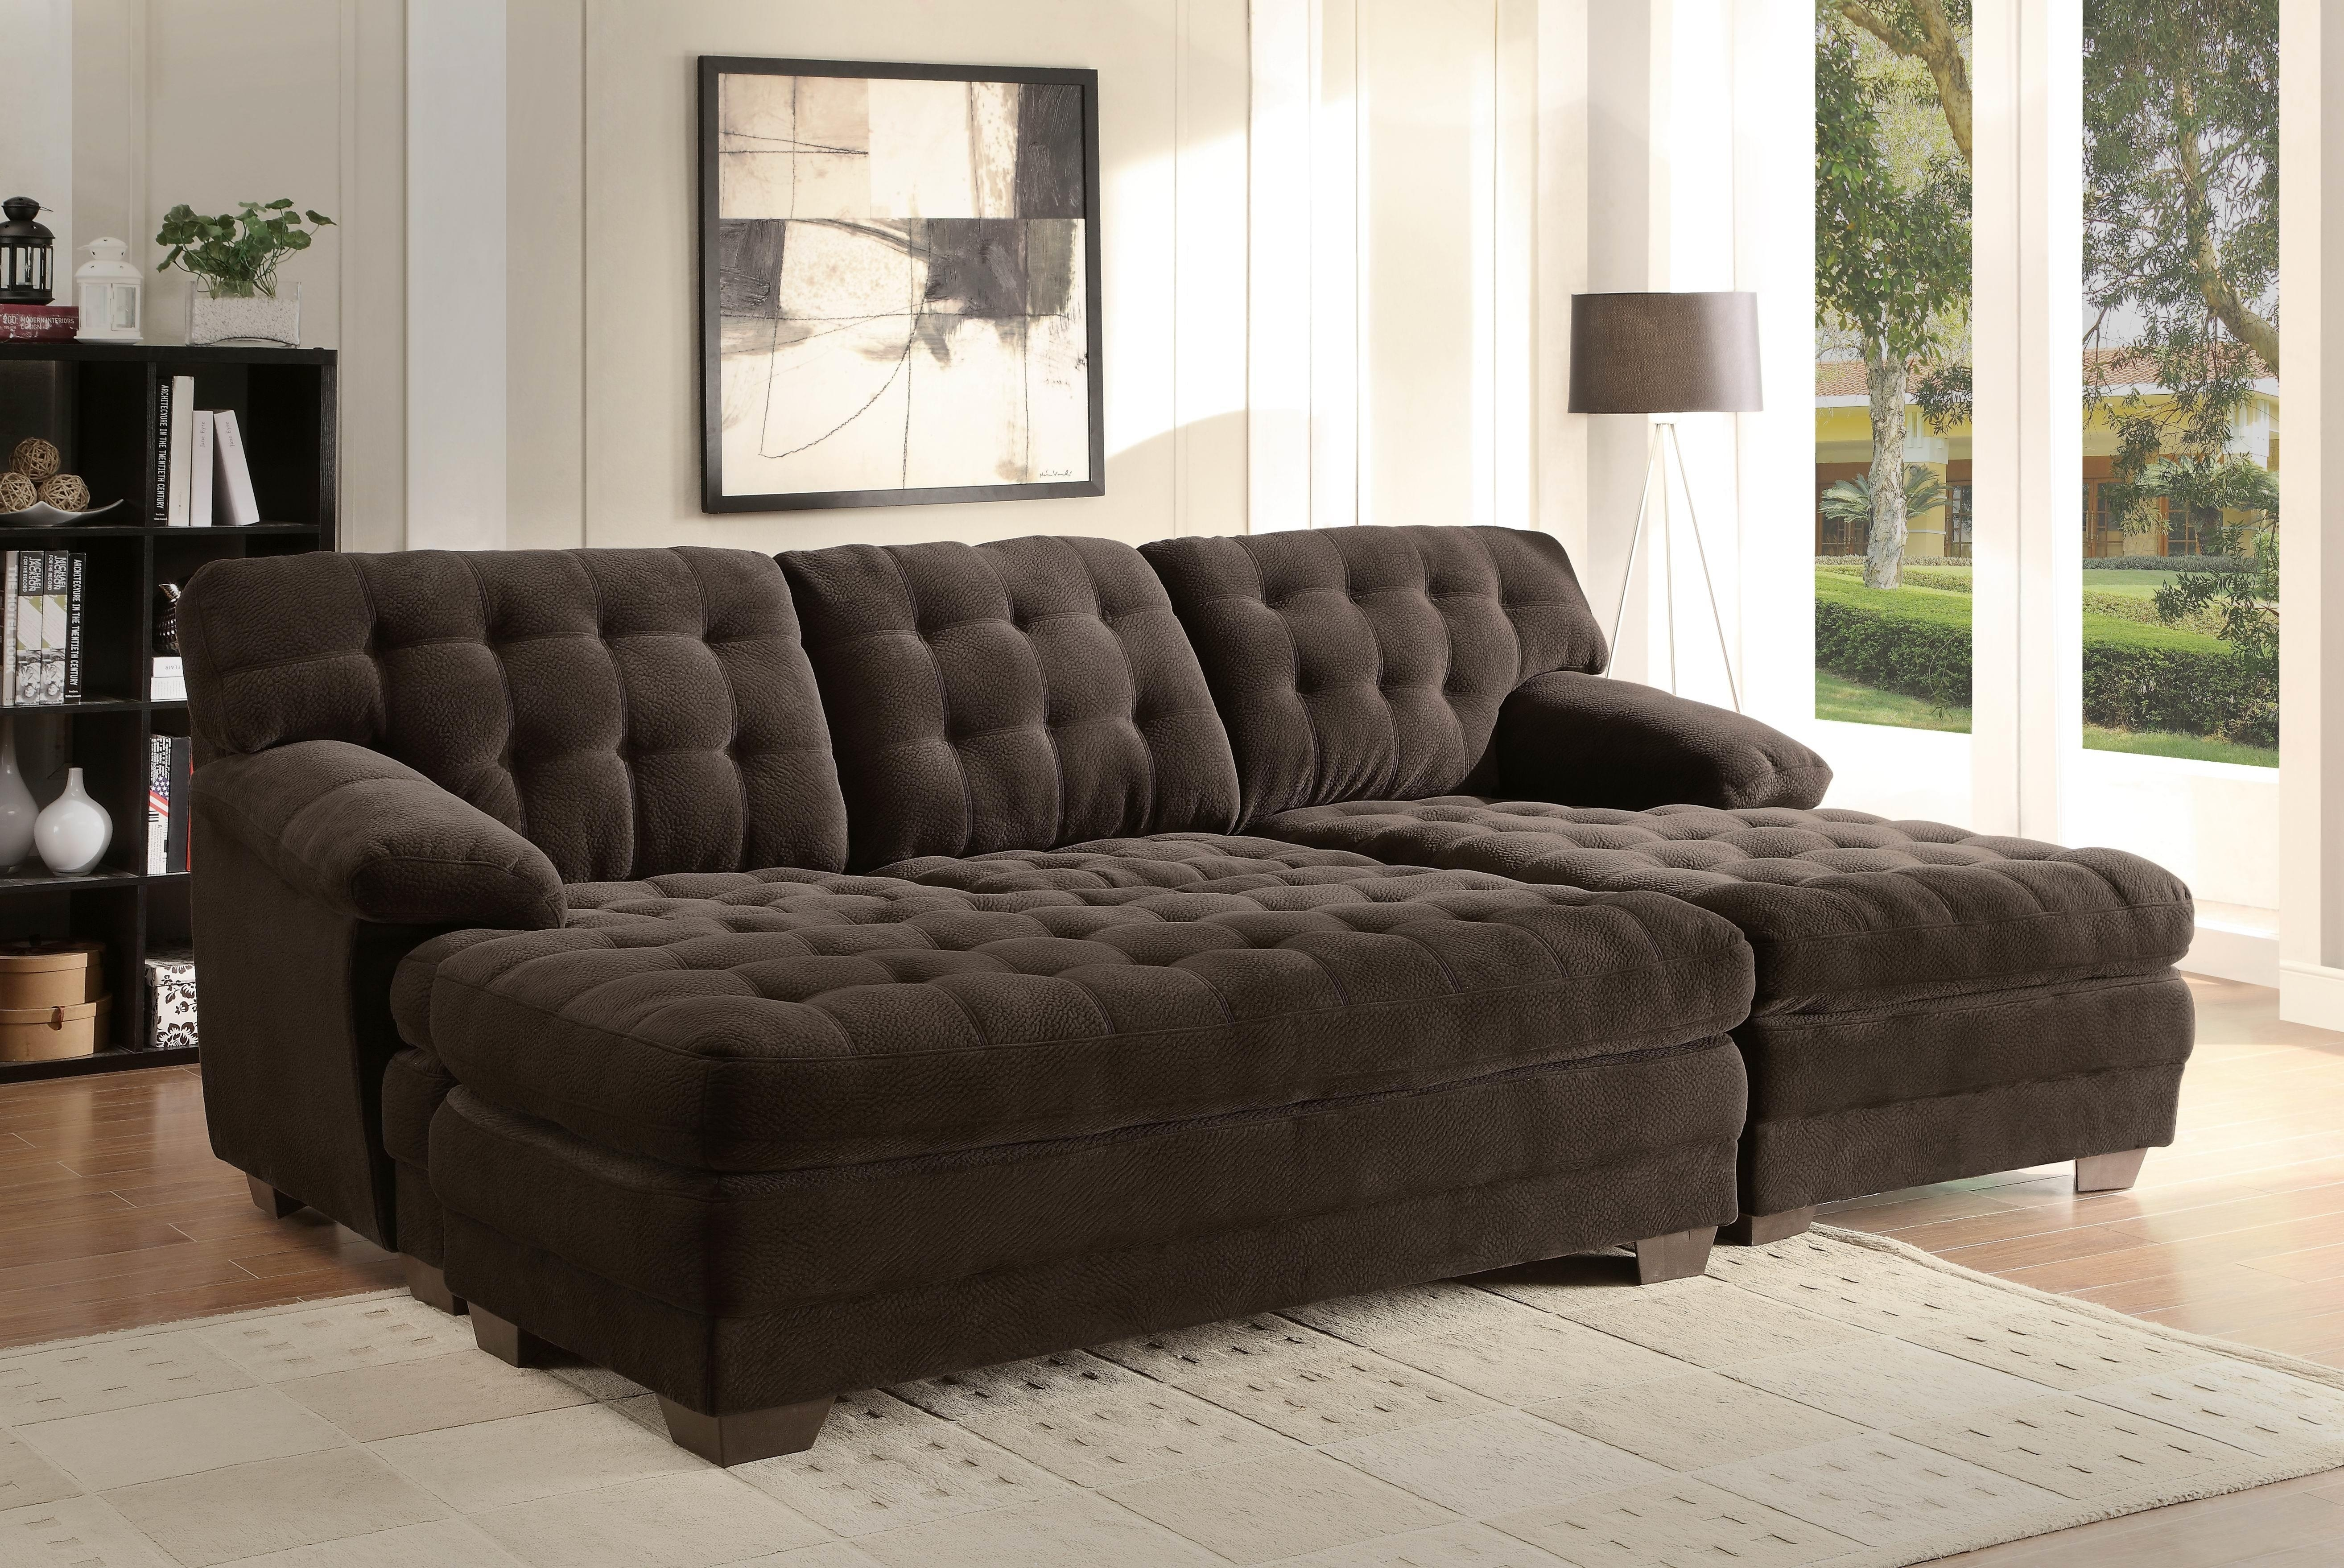 Large Sectional Sofa With Ottoman | Aifaresidency in Sofas With Large Ottoman (Image 5 of 10)